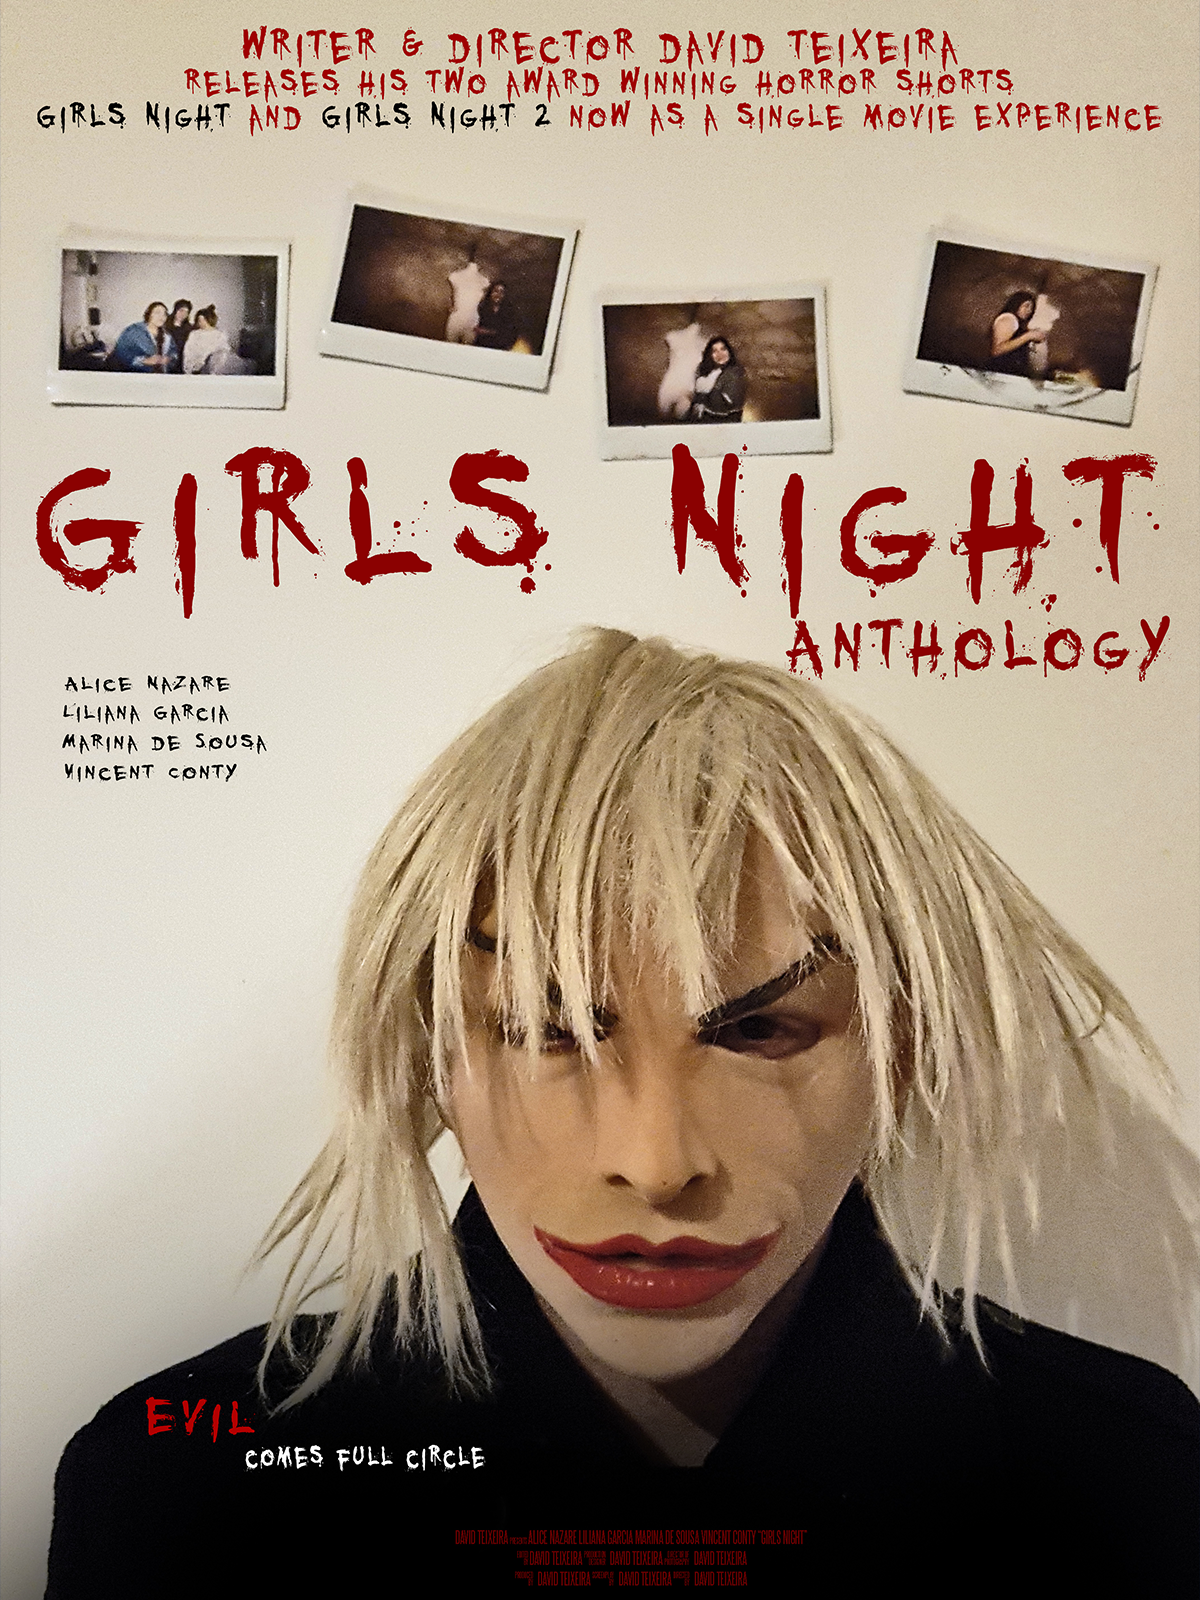 GIRLS NIGHT ANTHOLOGY 1200X1600 ARTWORK.